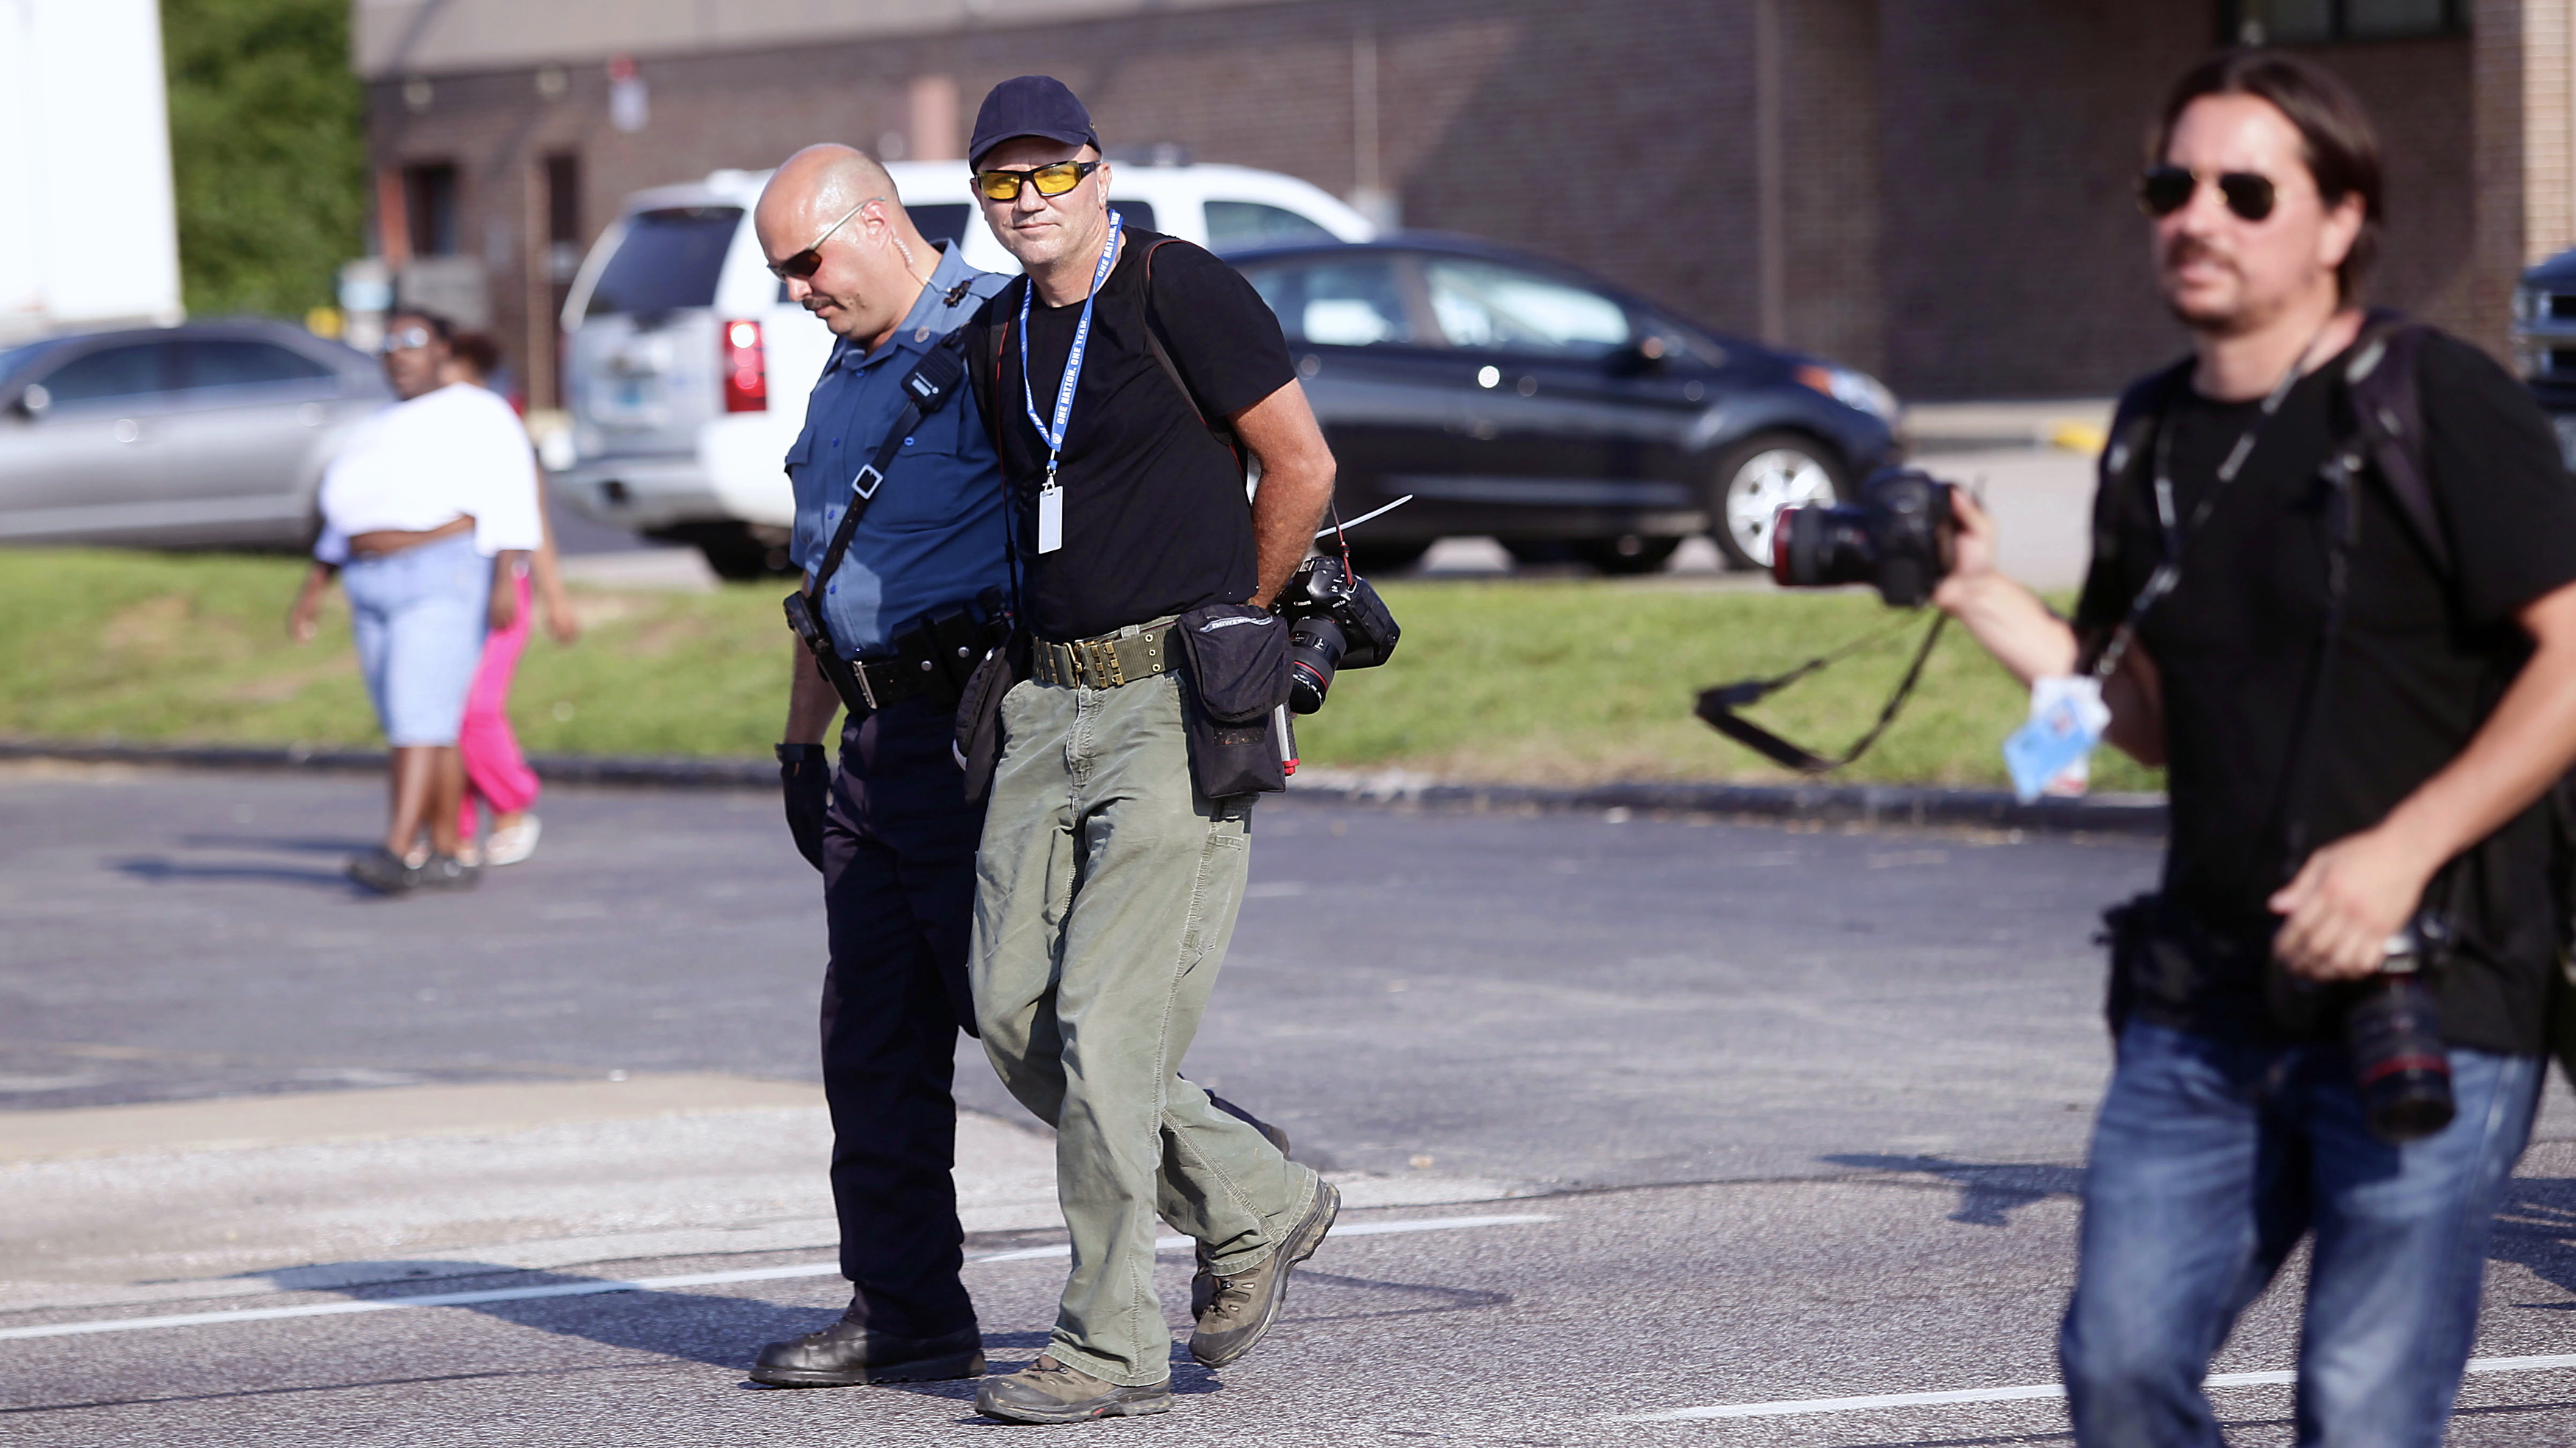 Among several of the journalists arrested by police in Ferguson in recent days was Scott Olson, a photographer with Getty Images, who was detained on August 18th.